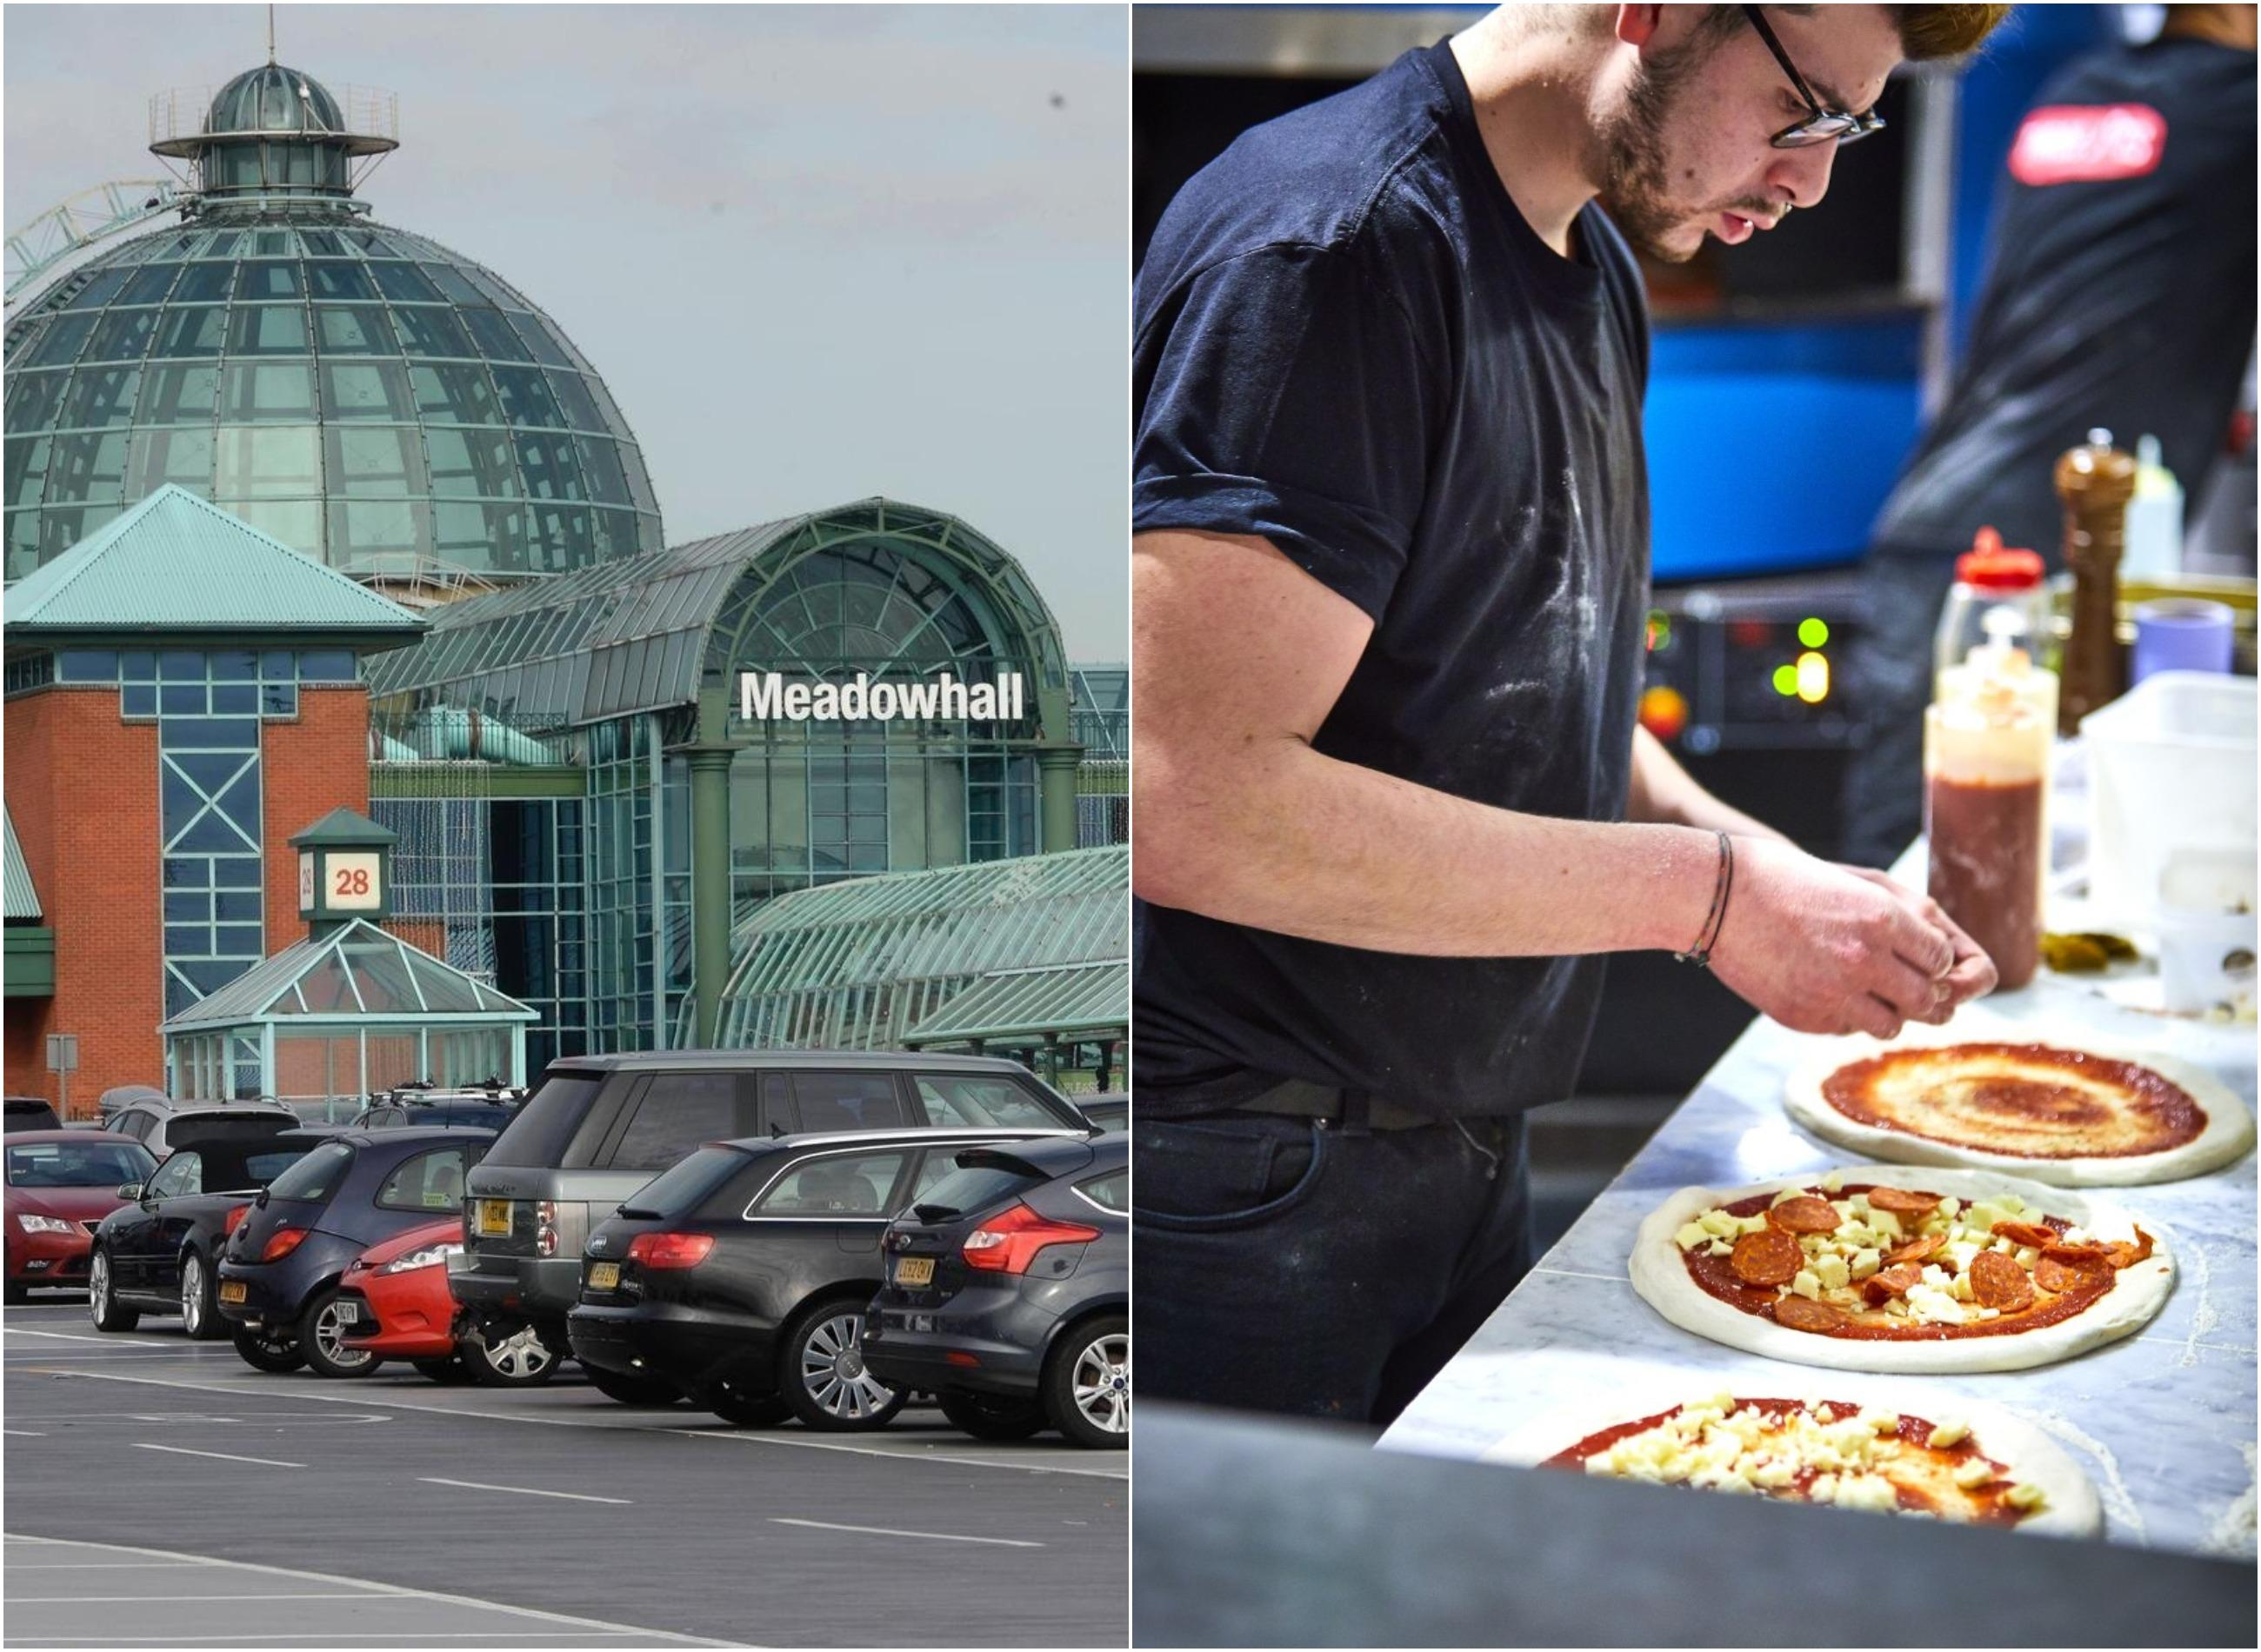 New Meadowhall Restaurant Offering Free Pizza To Sheffield